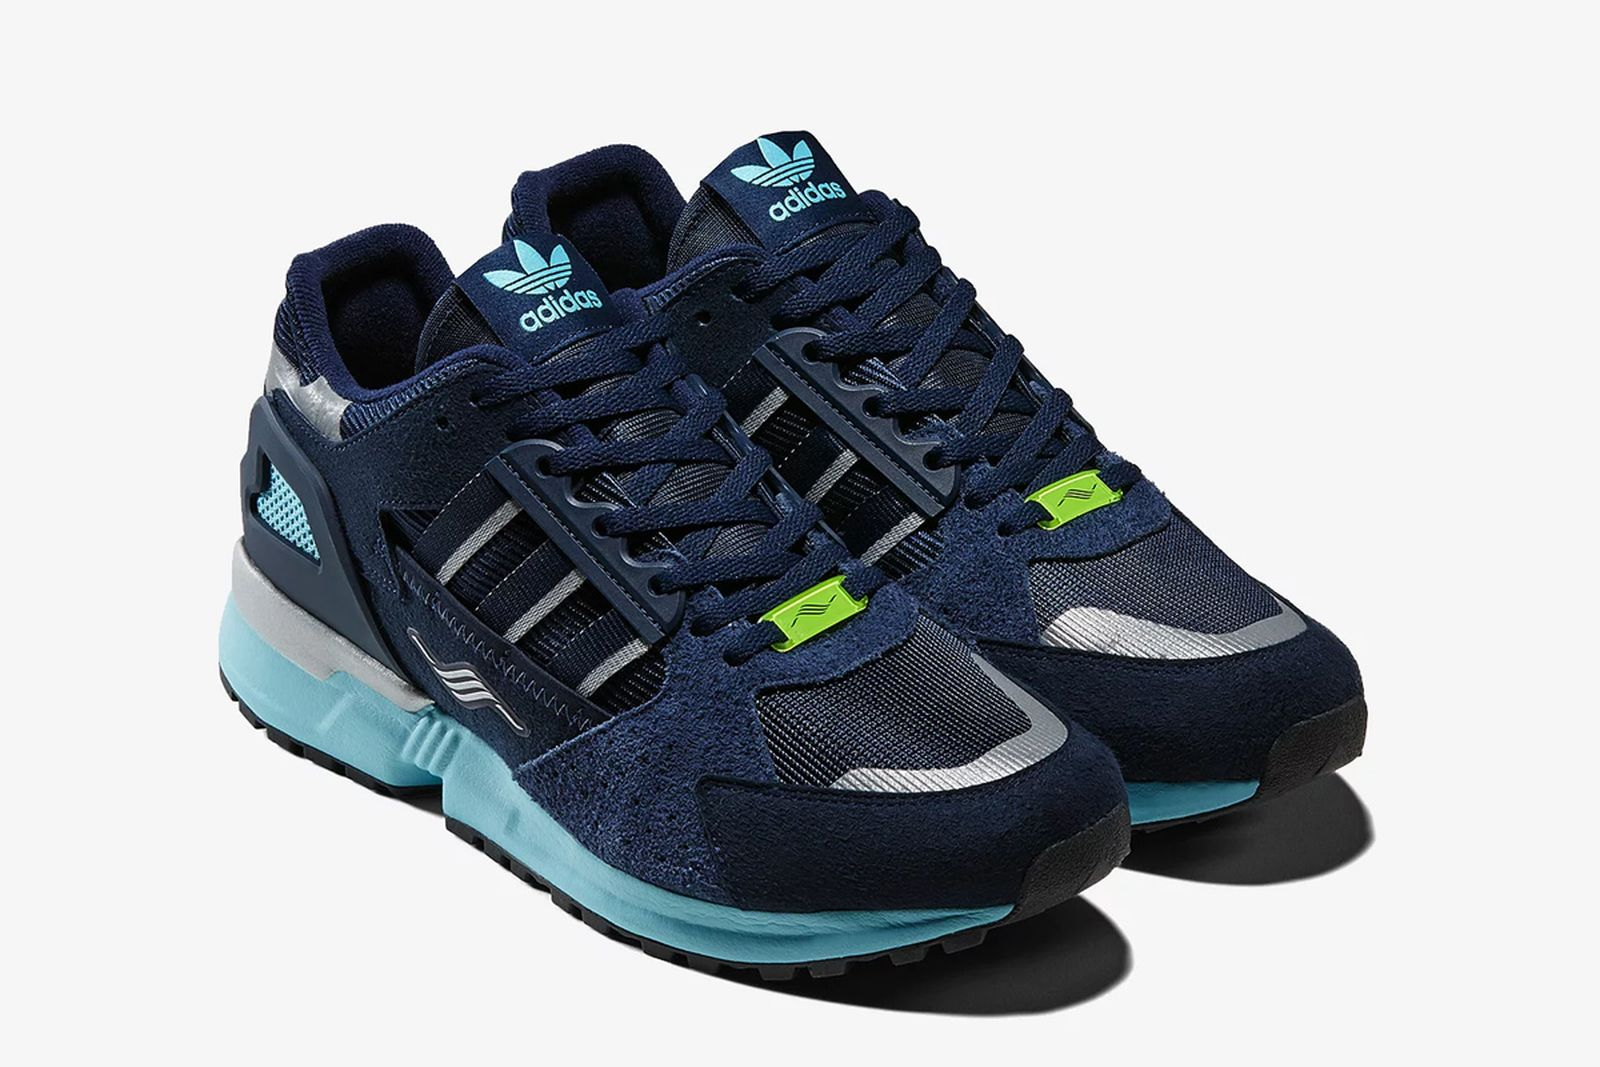 adidas-consortium-zx-10000-jc-release-date-price-02